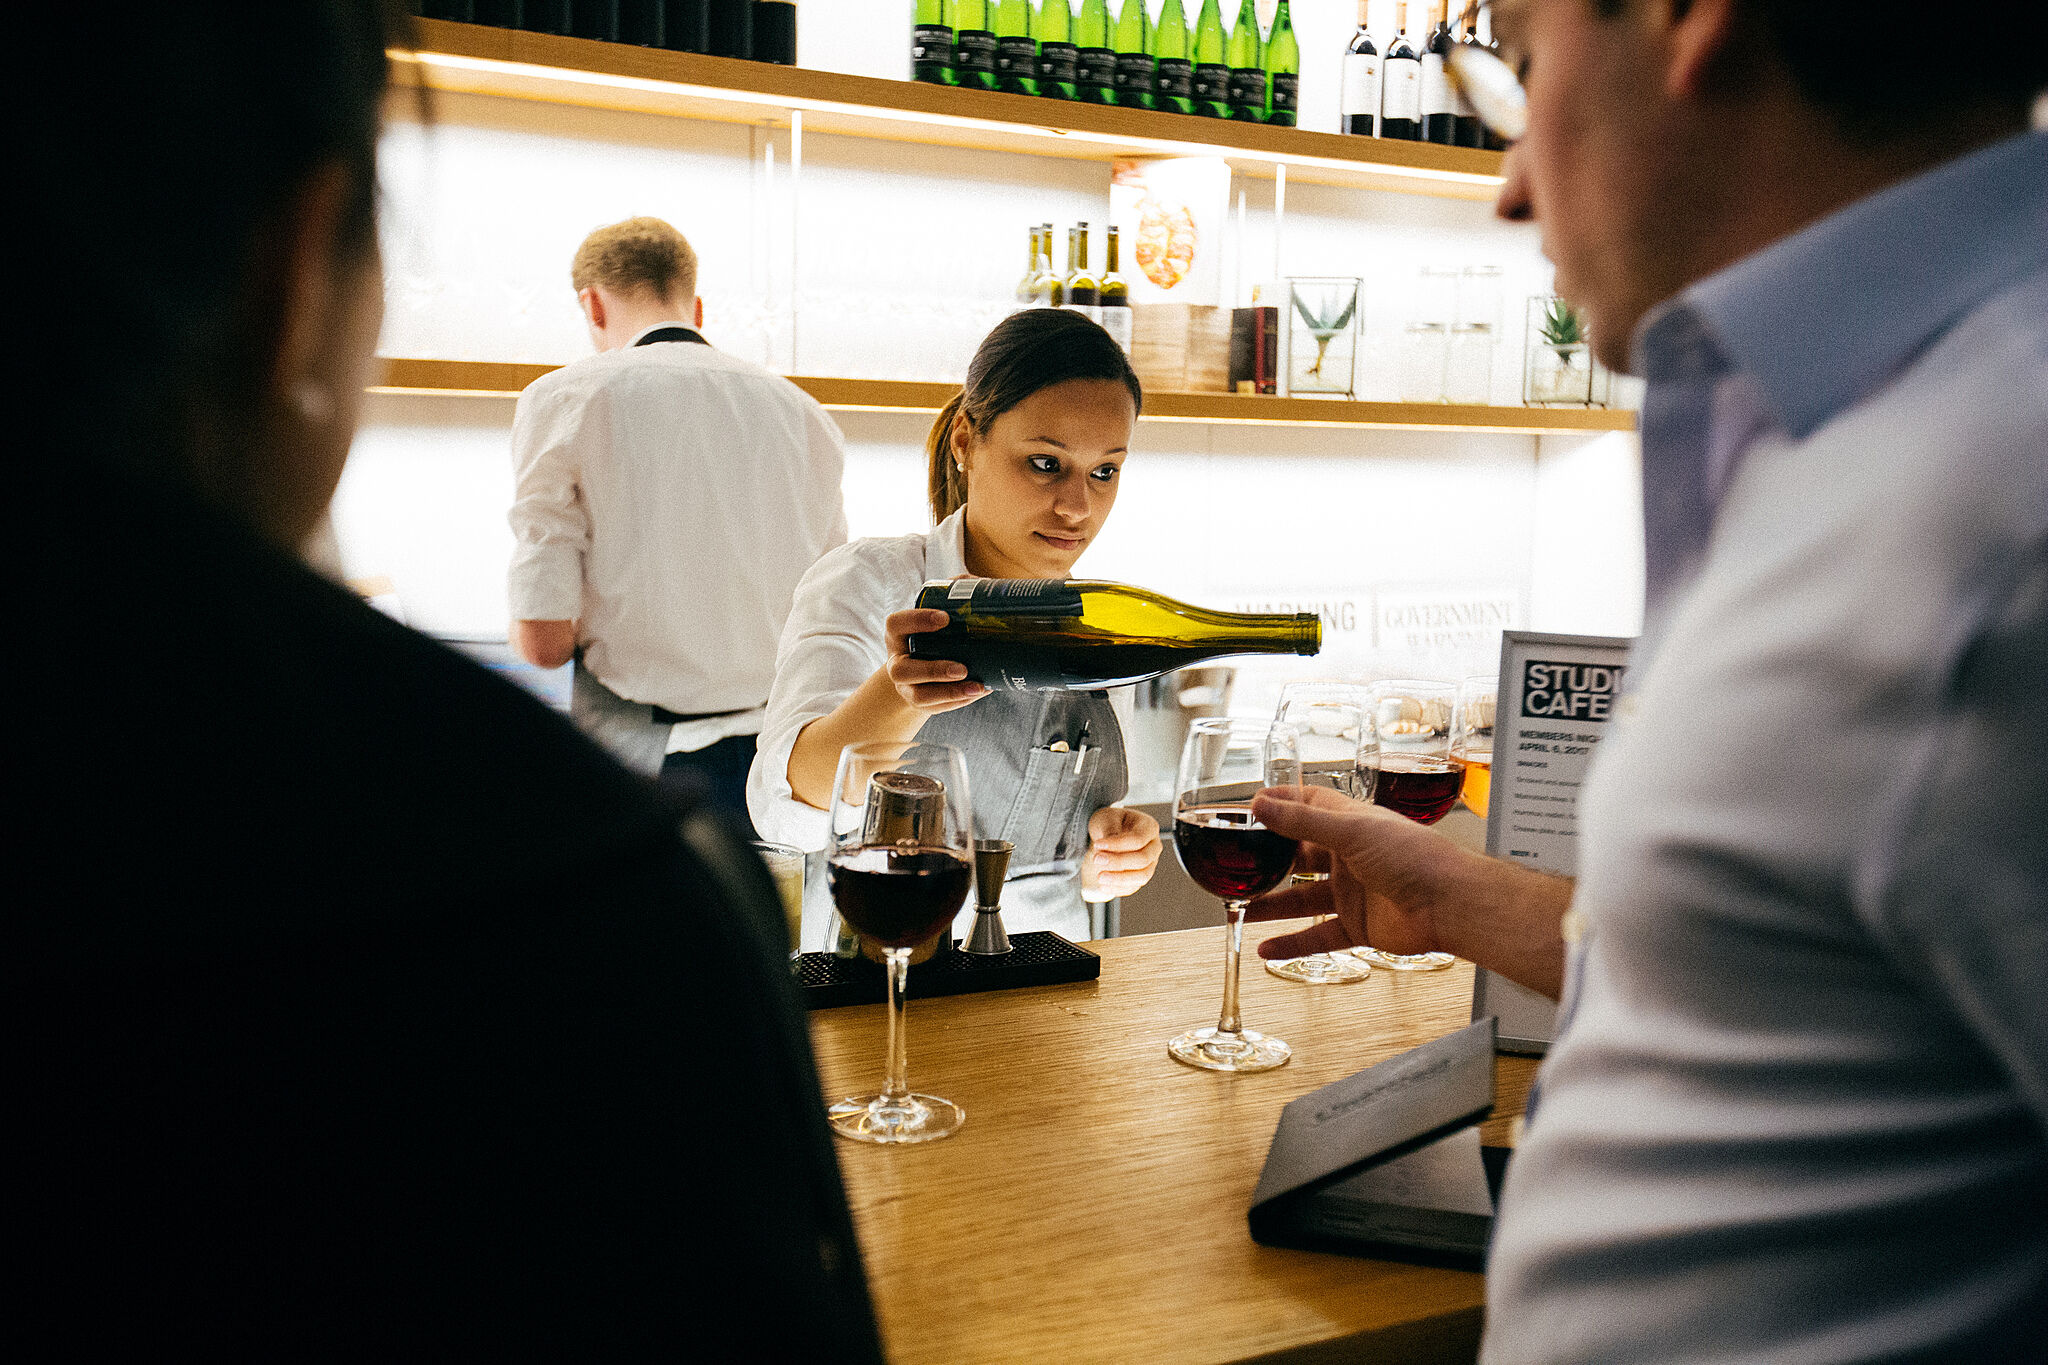 A woman pouring a bottle of wine at Studio Cafe.